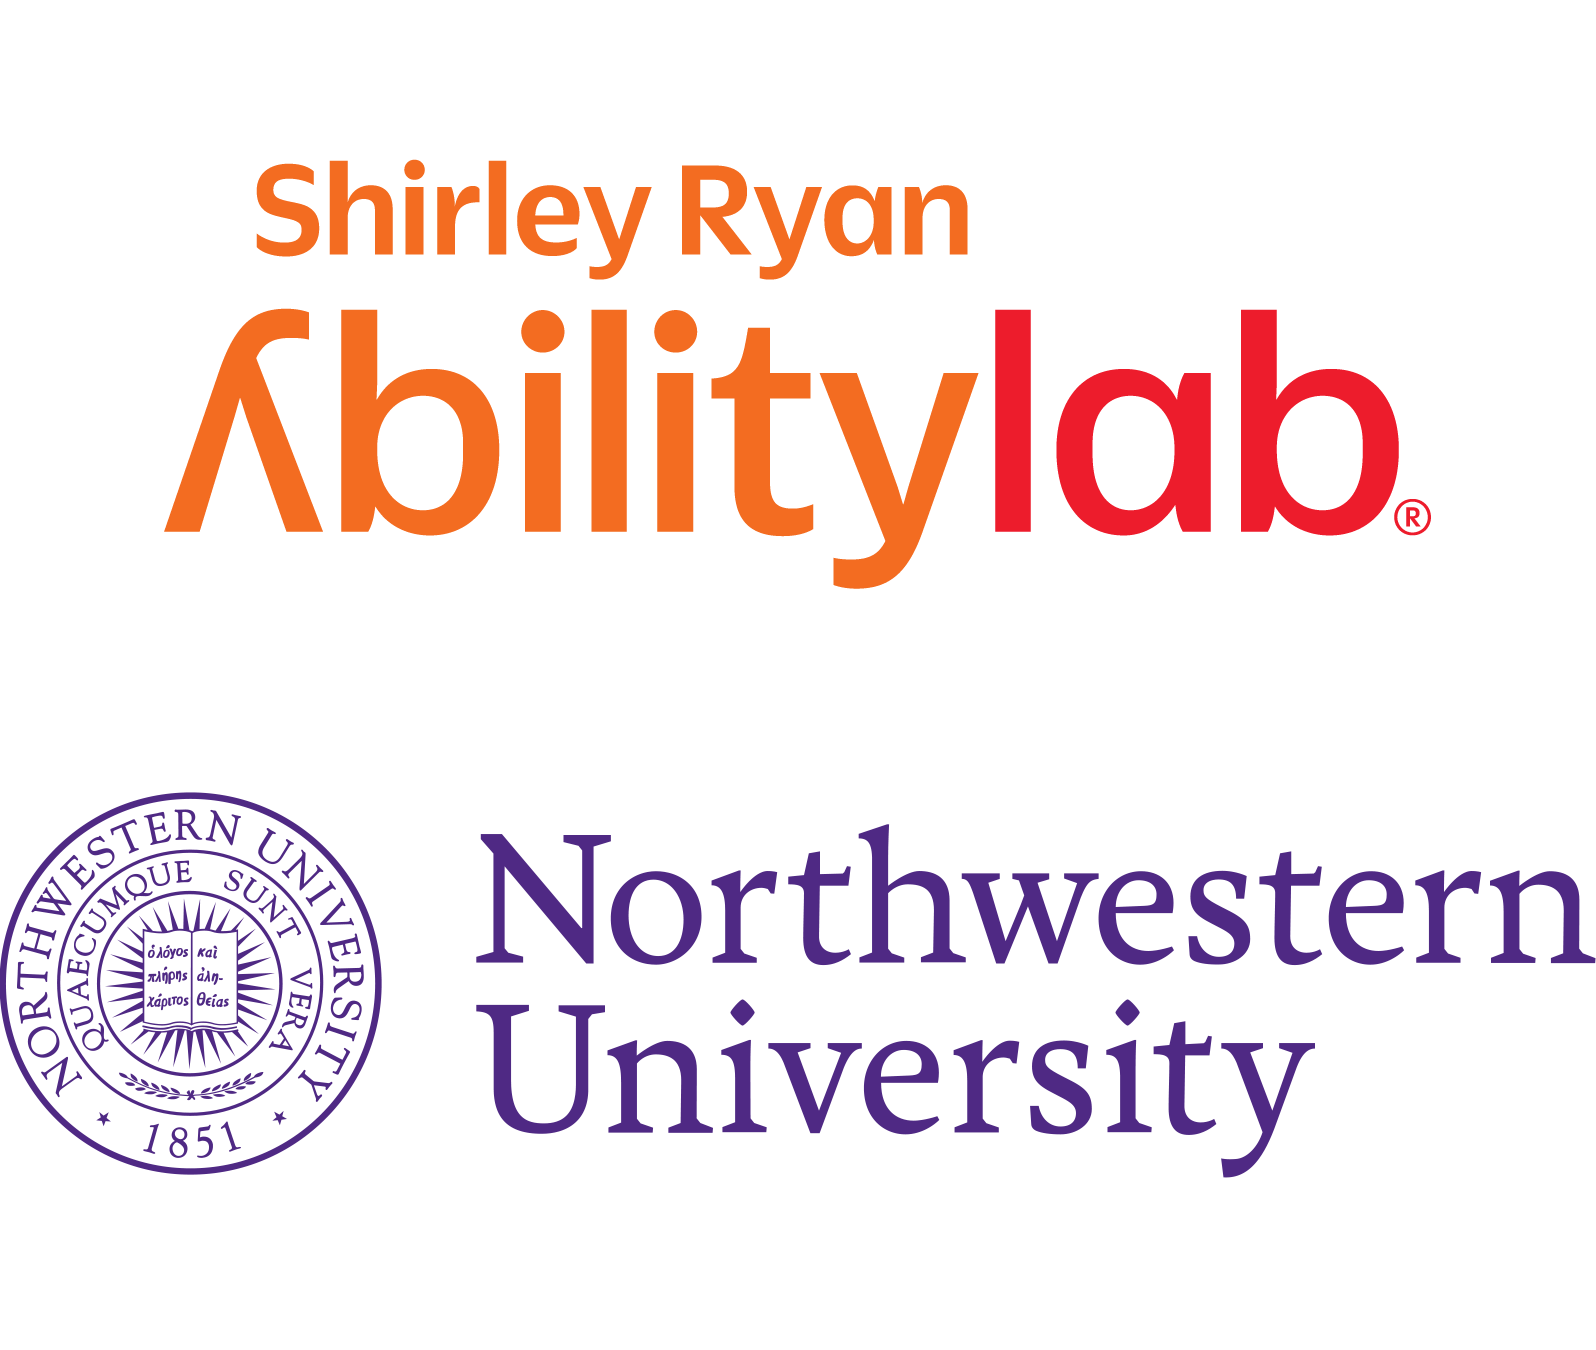 Town Hall #3 - Shirley Ryan AbilityLab and Northwestern University